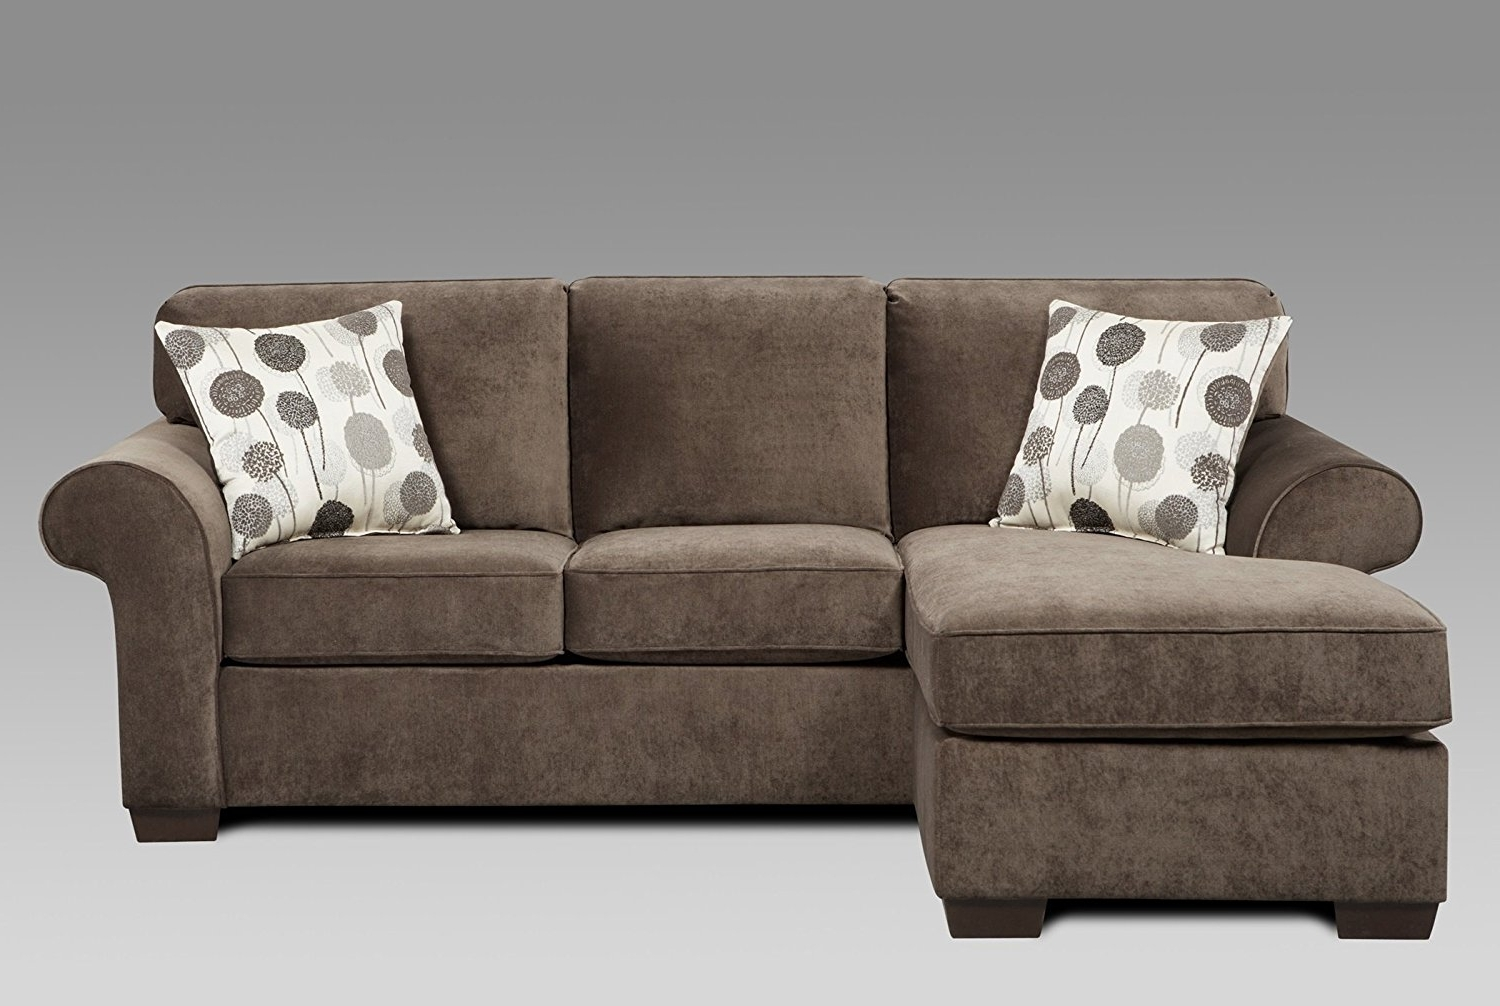 Well Liked Loveseats With Chaise With Amazon: Roundhill Furniture Fabric Sectional Sofa And Loveseat (View 15 of 15)